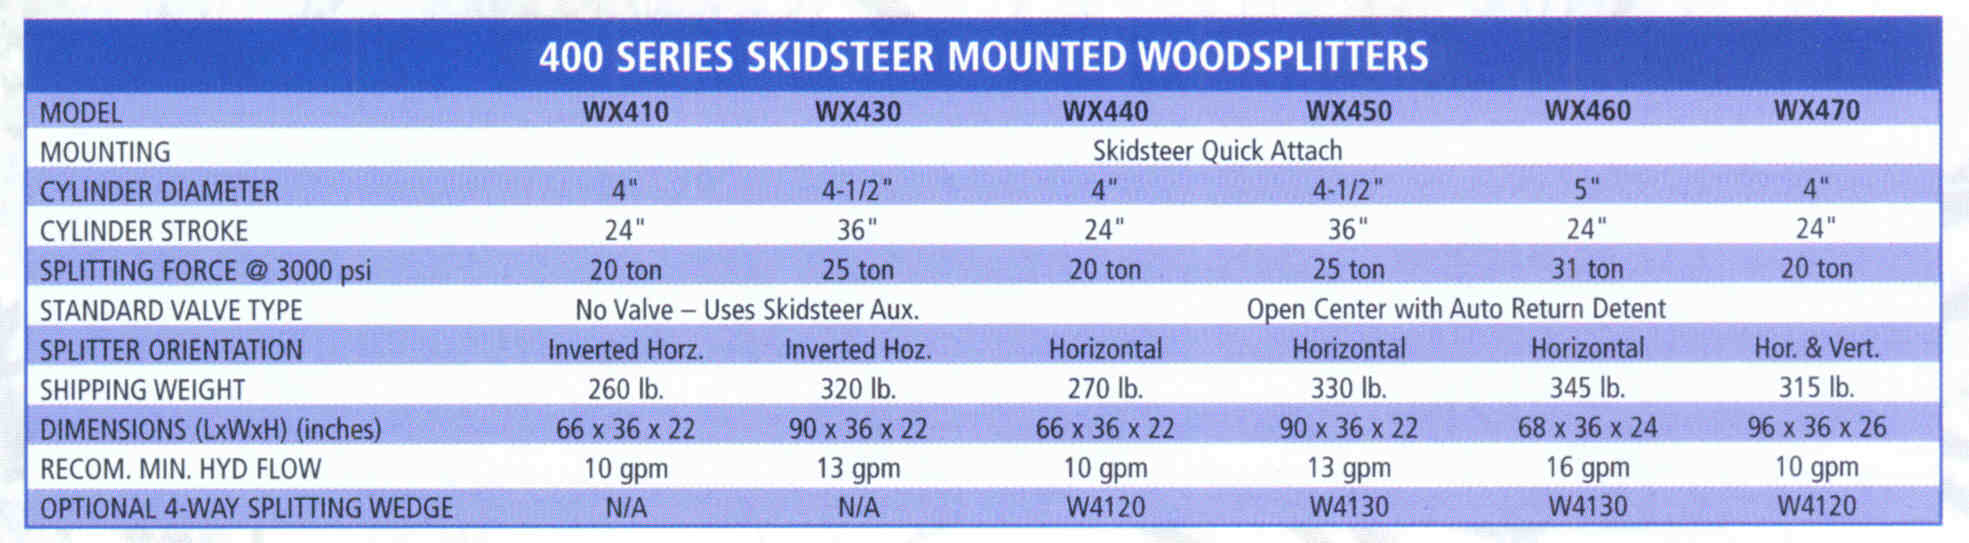 Specifications - Skid Steer Mounted Models